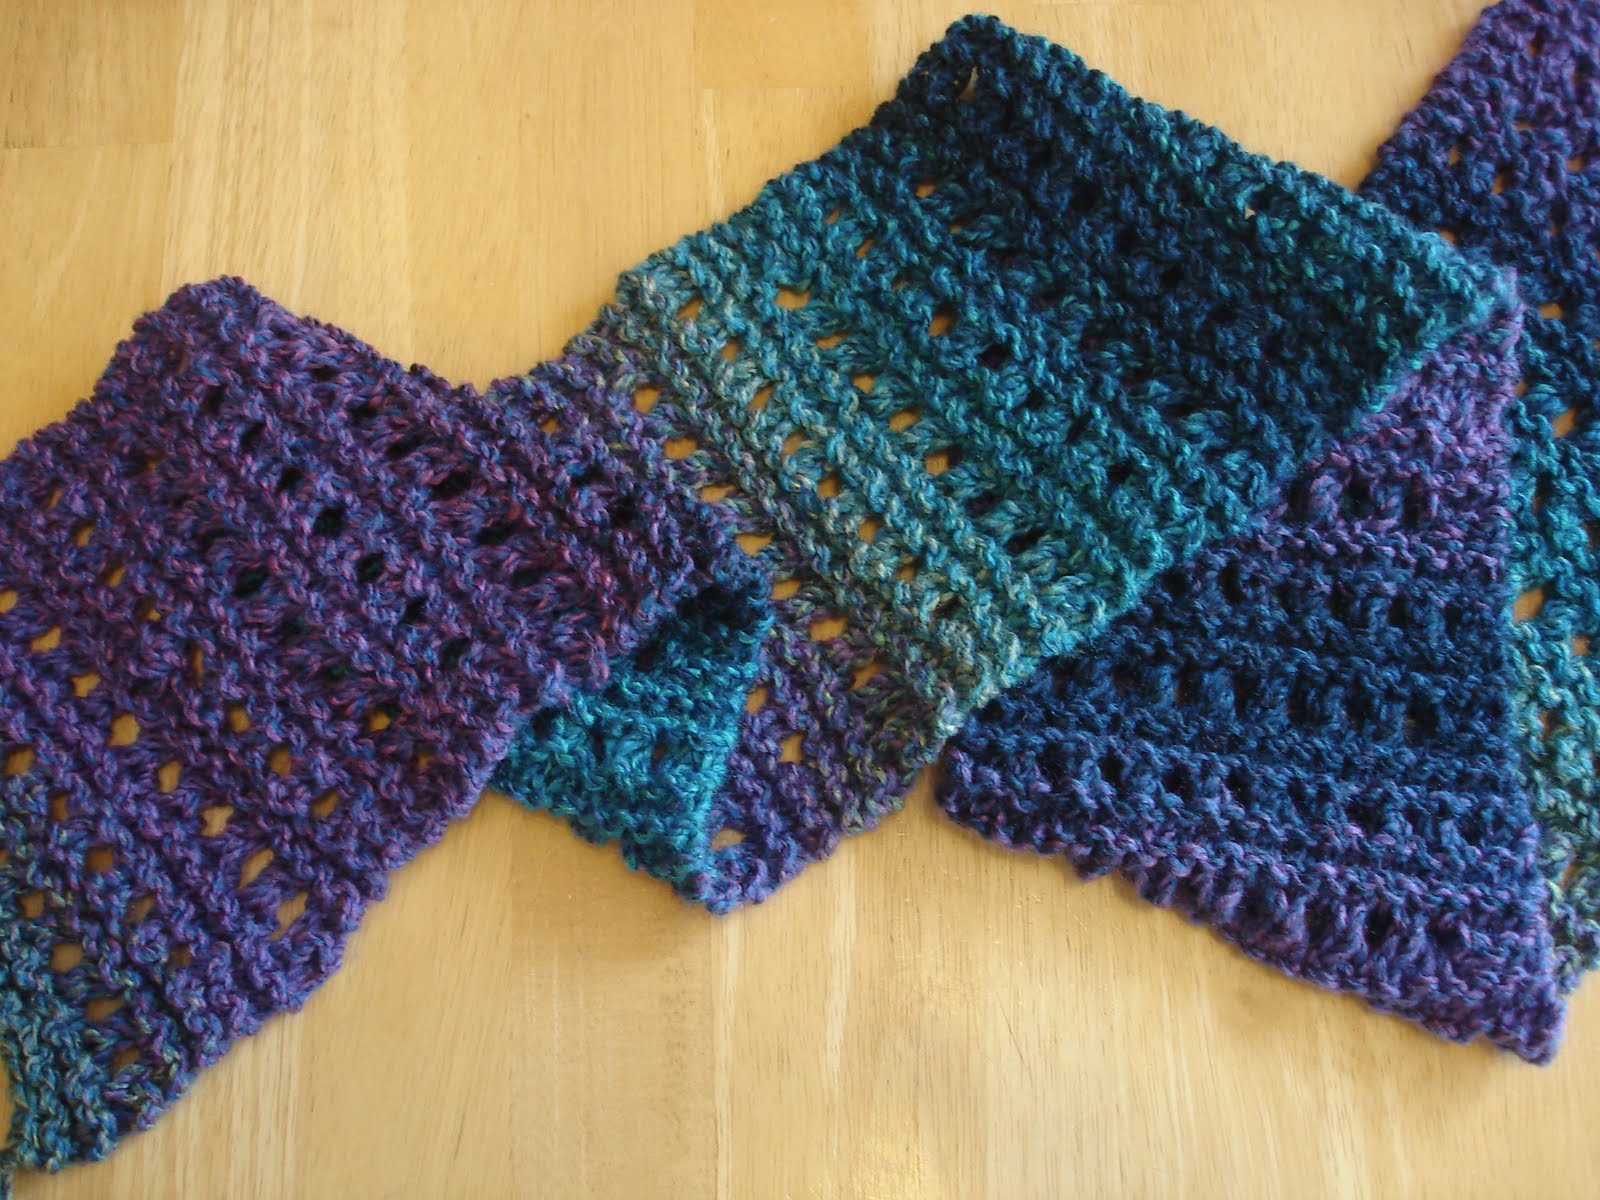 Knitting Scarf Patterns Beginners : Fiber Flux: Free Knitting Patterns